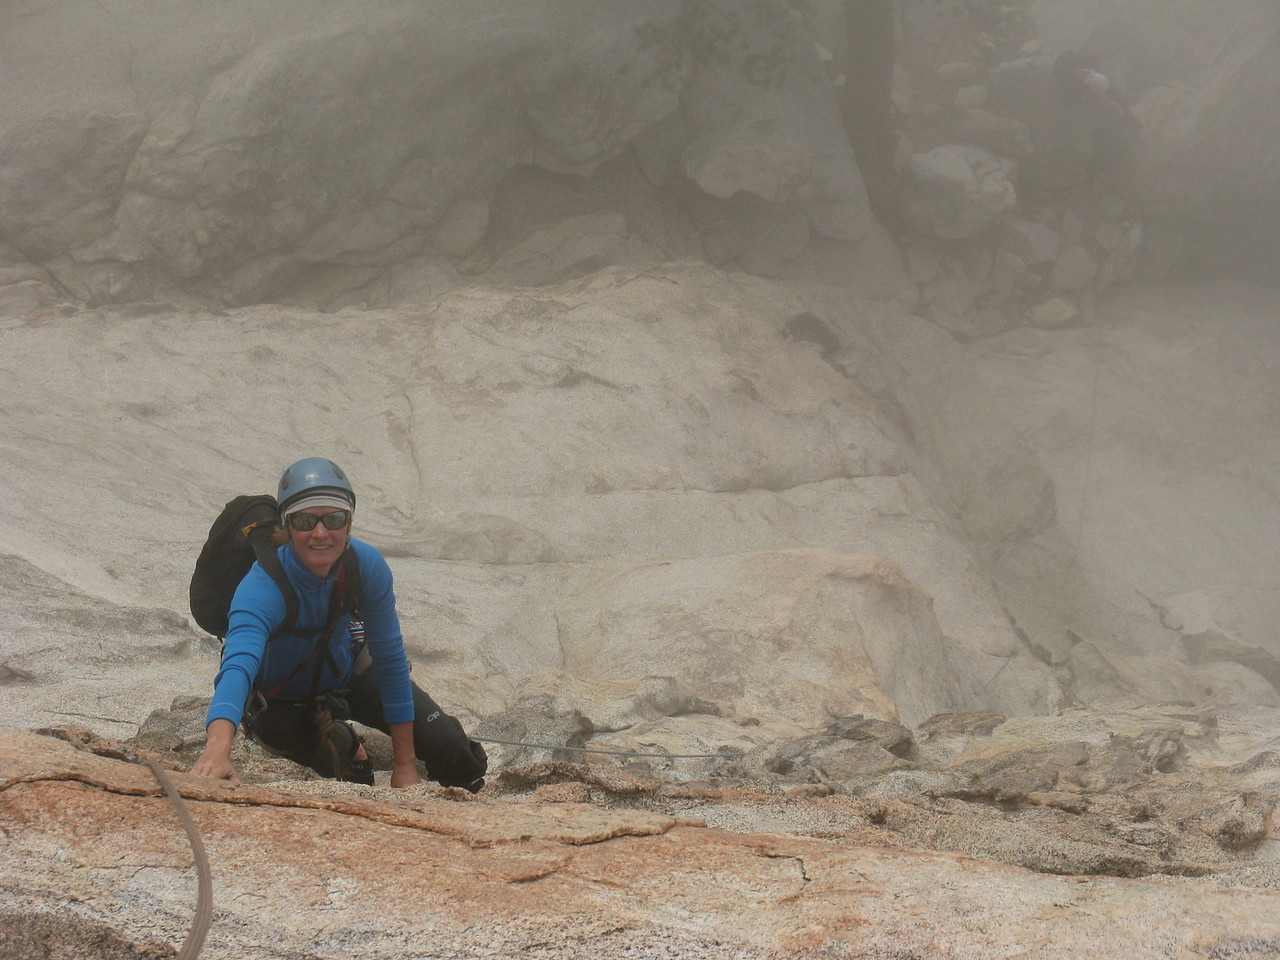 4/11/13 Kitty climbing through the mist to find her Neil on Taquitz